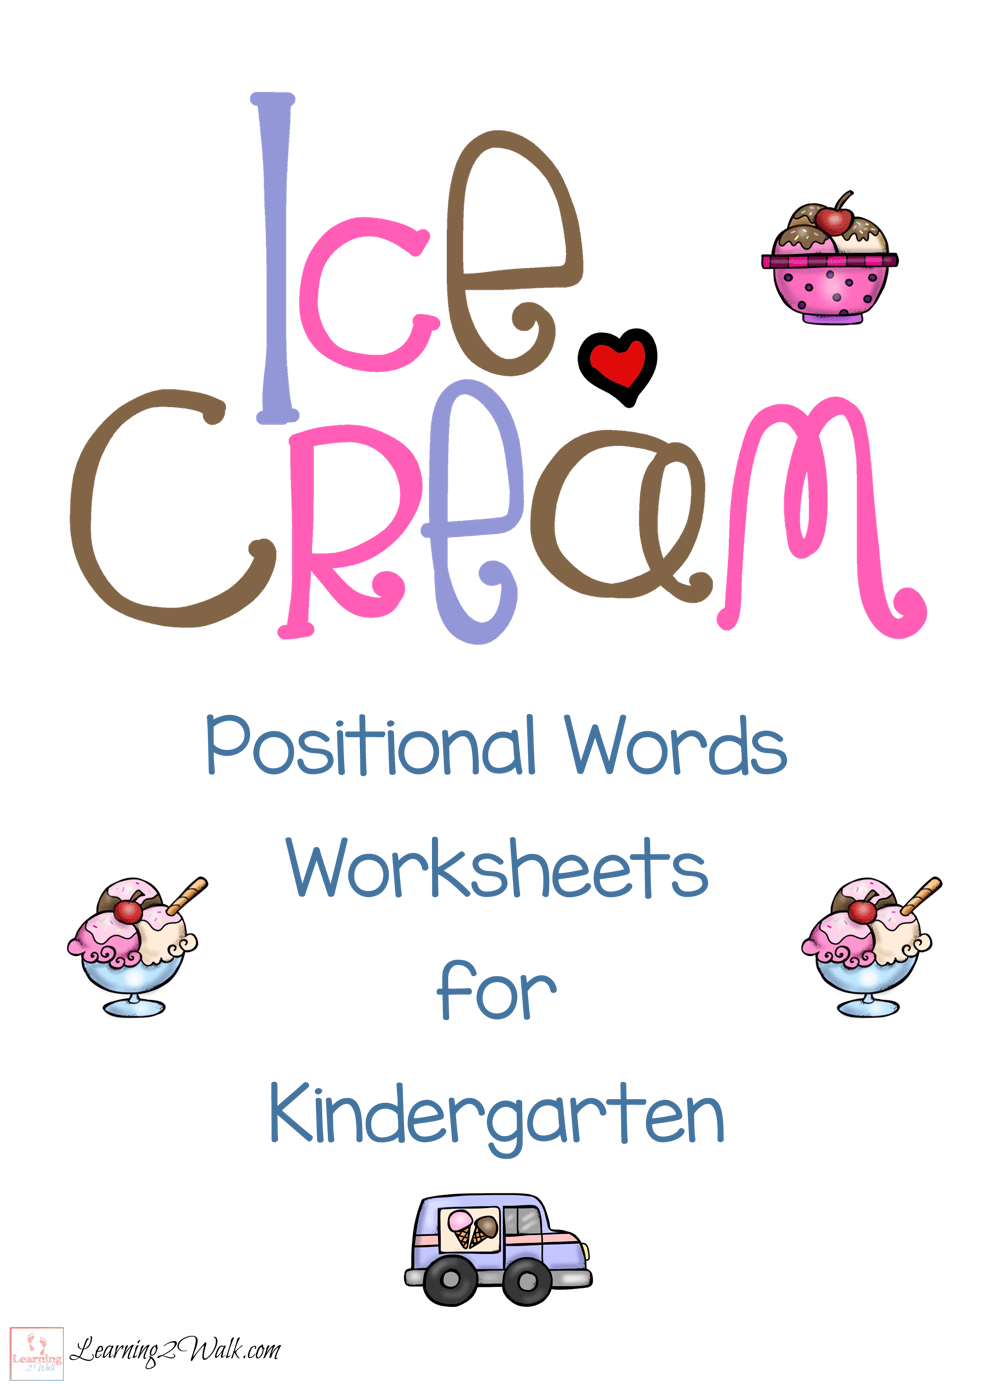 Ice Cream Positional Words Worksheets For Kindergarten